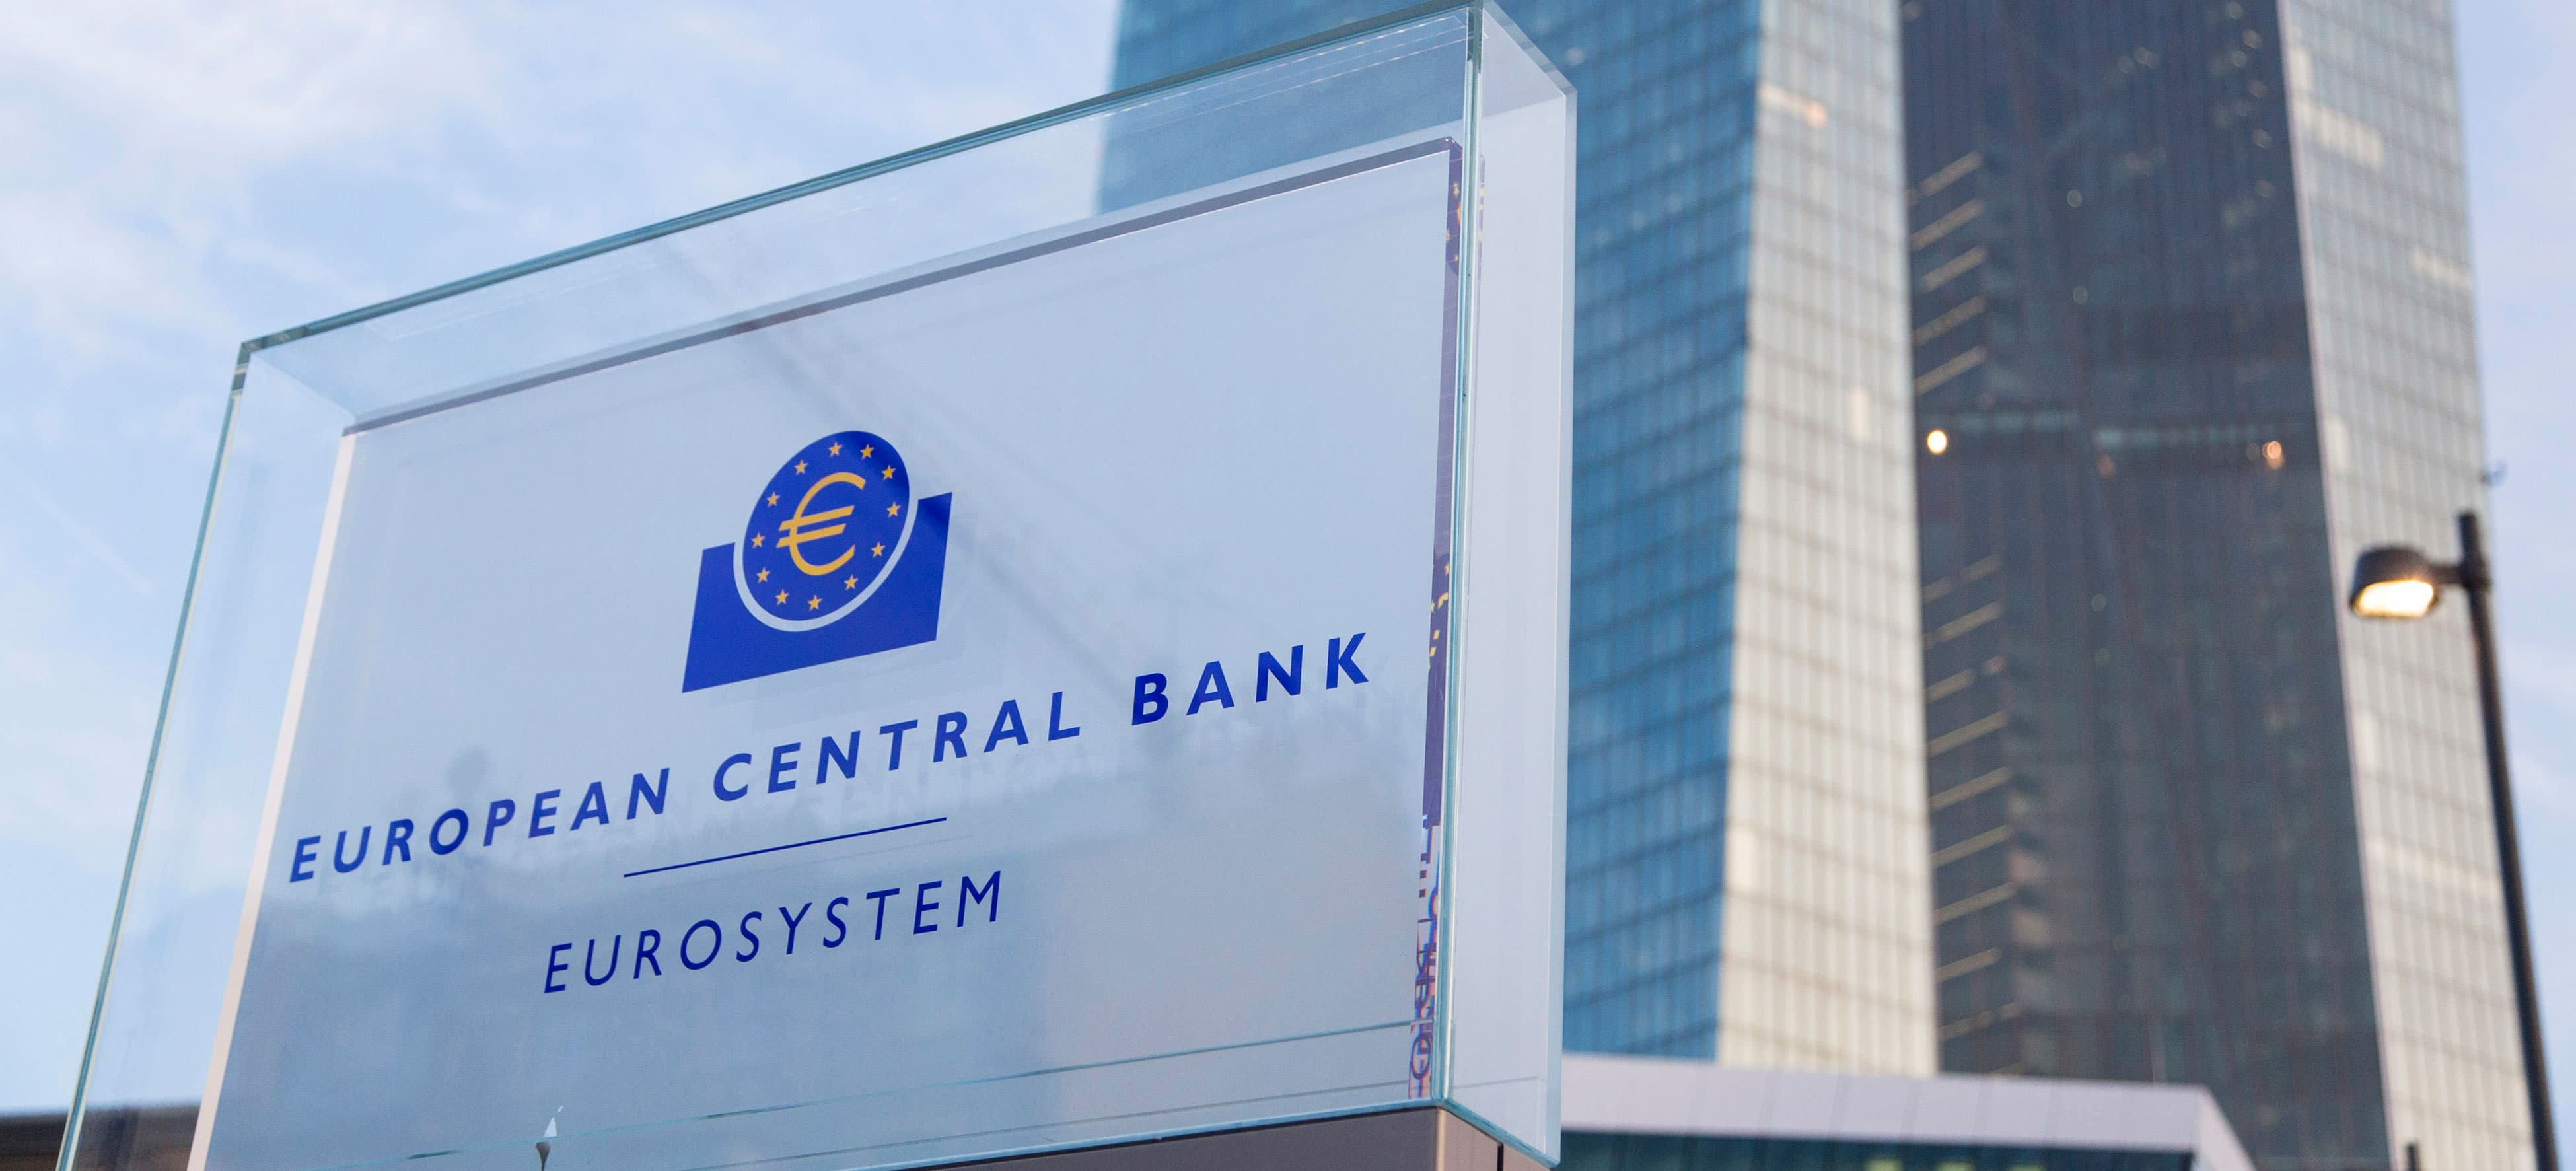 European and Japanese Central Banks Launch a Joint Blockchain Study